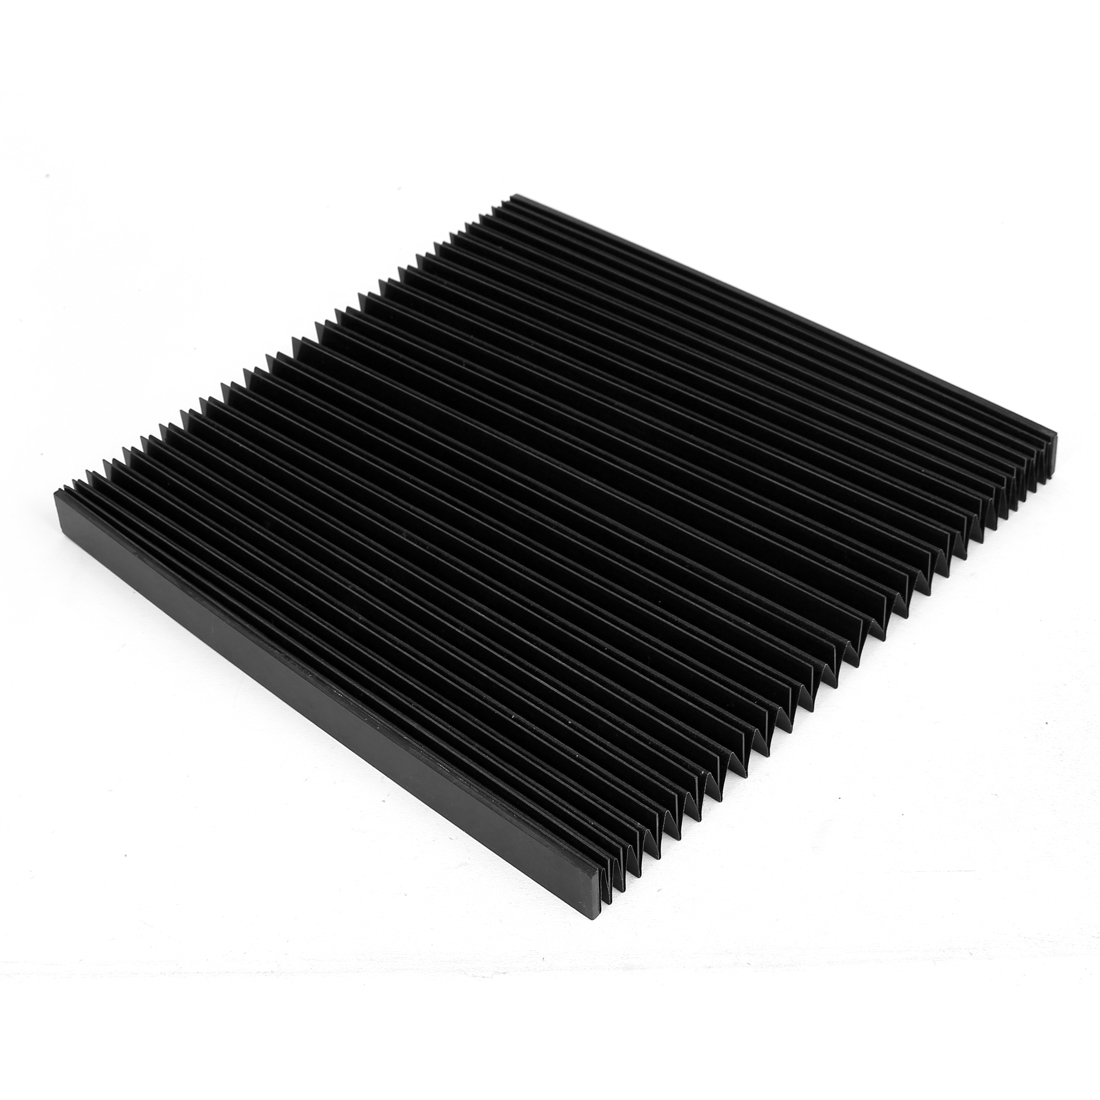 700mmx285mmx20mm Machine Fitting Foldable Dust Protective Cover Black